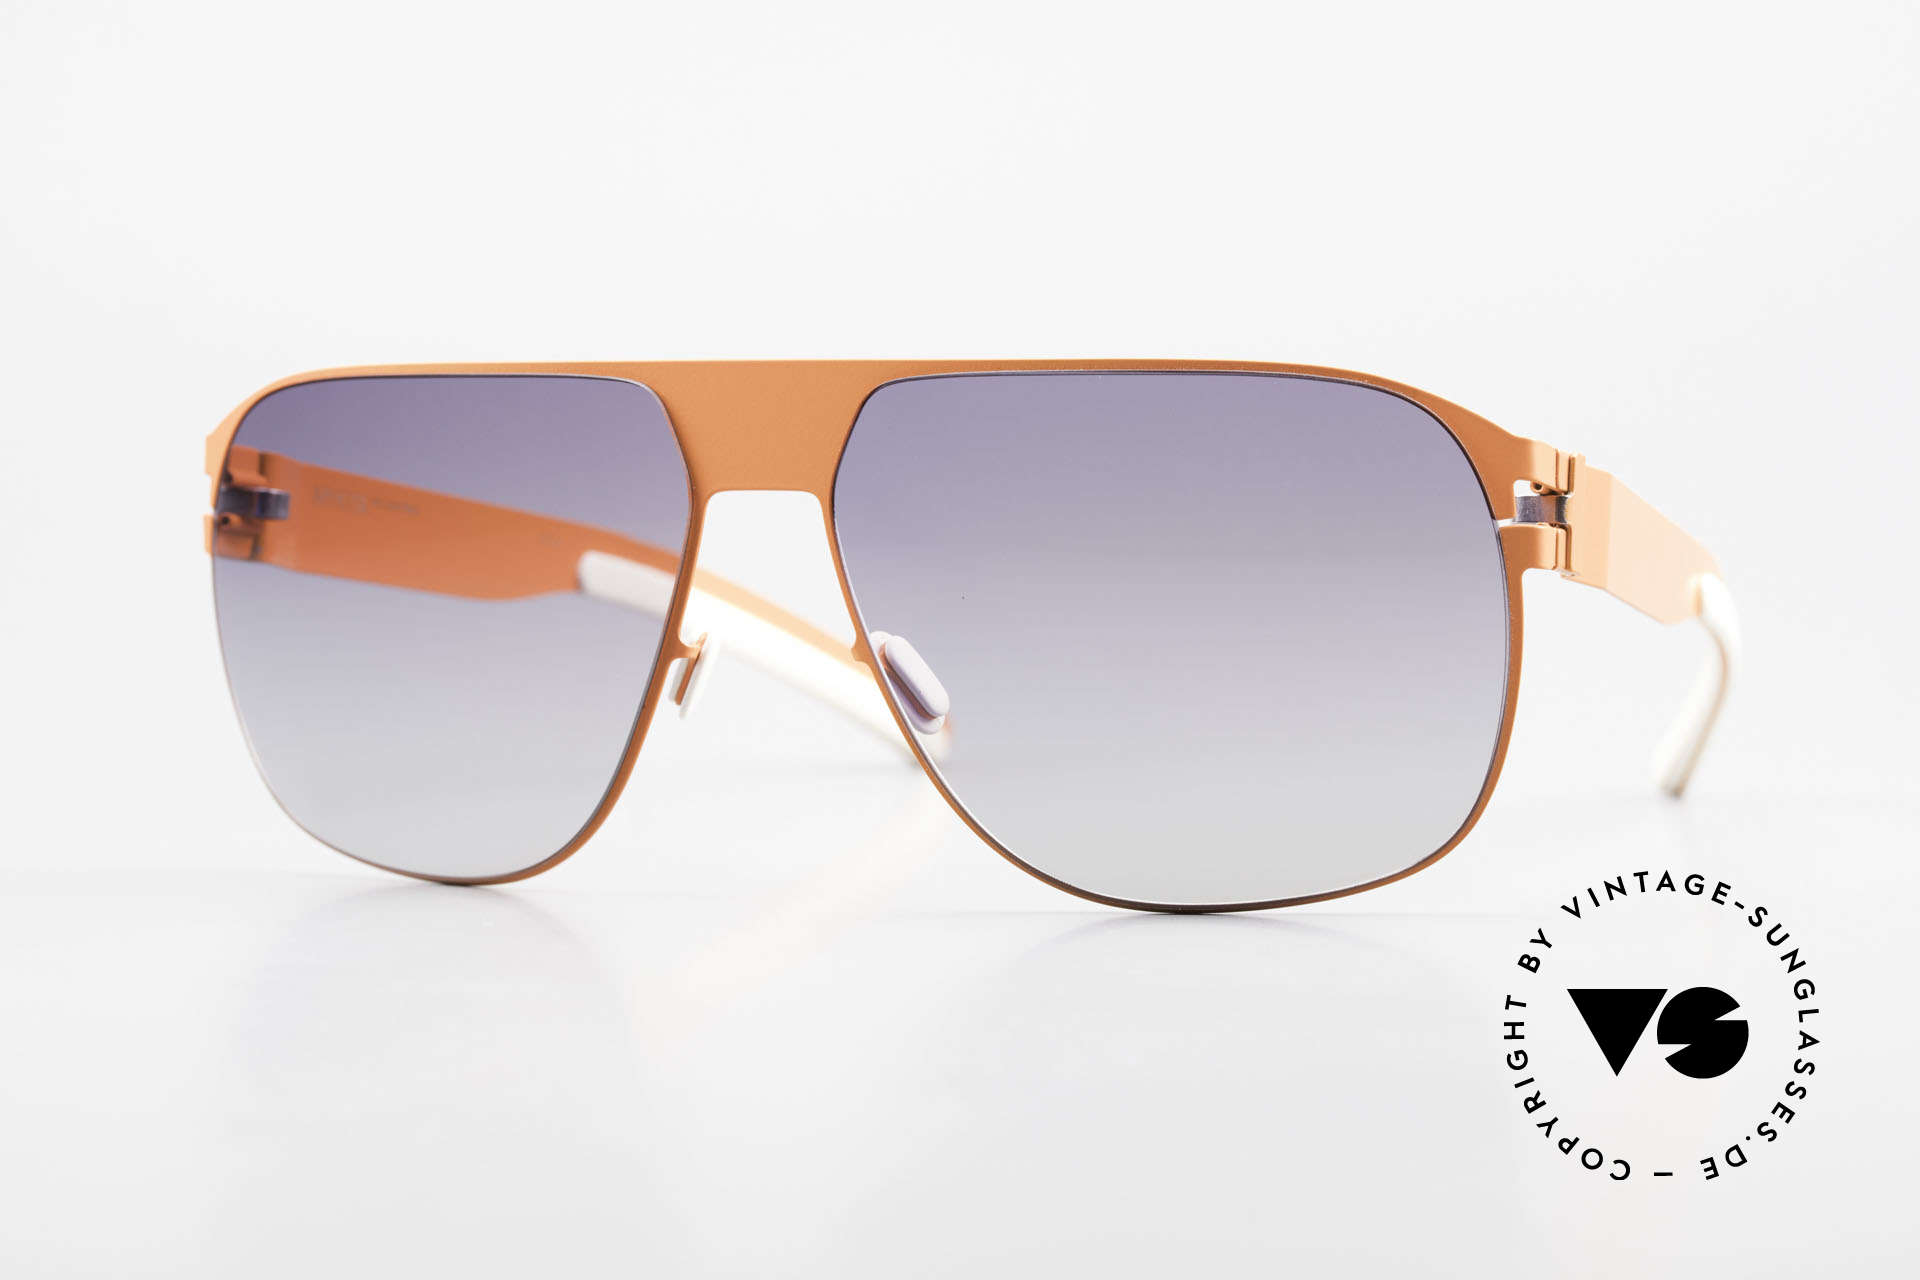 Mykita Tim Collection No 1 Shades 2011's, original VINTAGE Mykita designer sunglasses from 2011, Made for Men